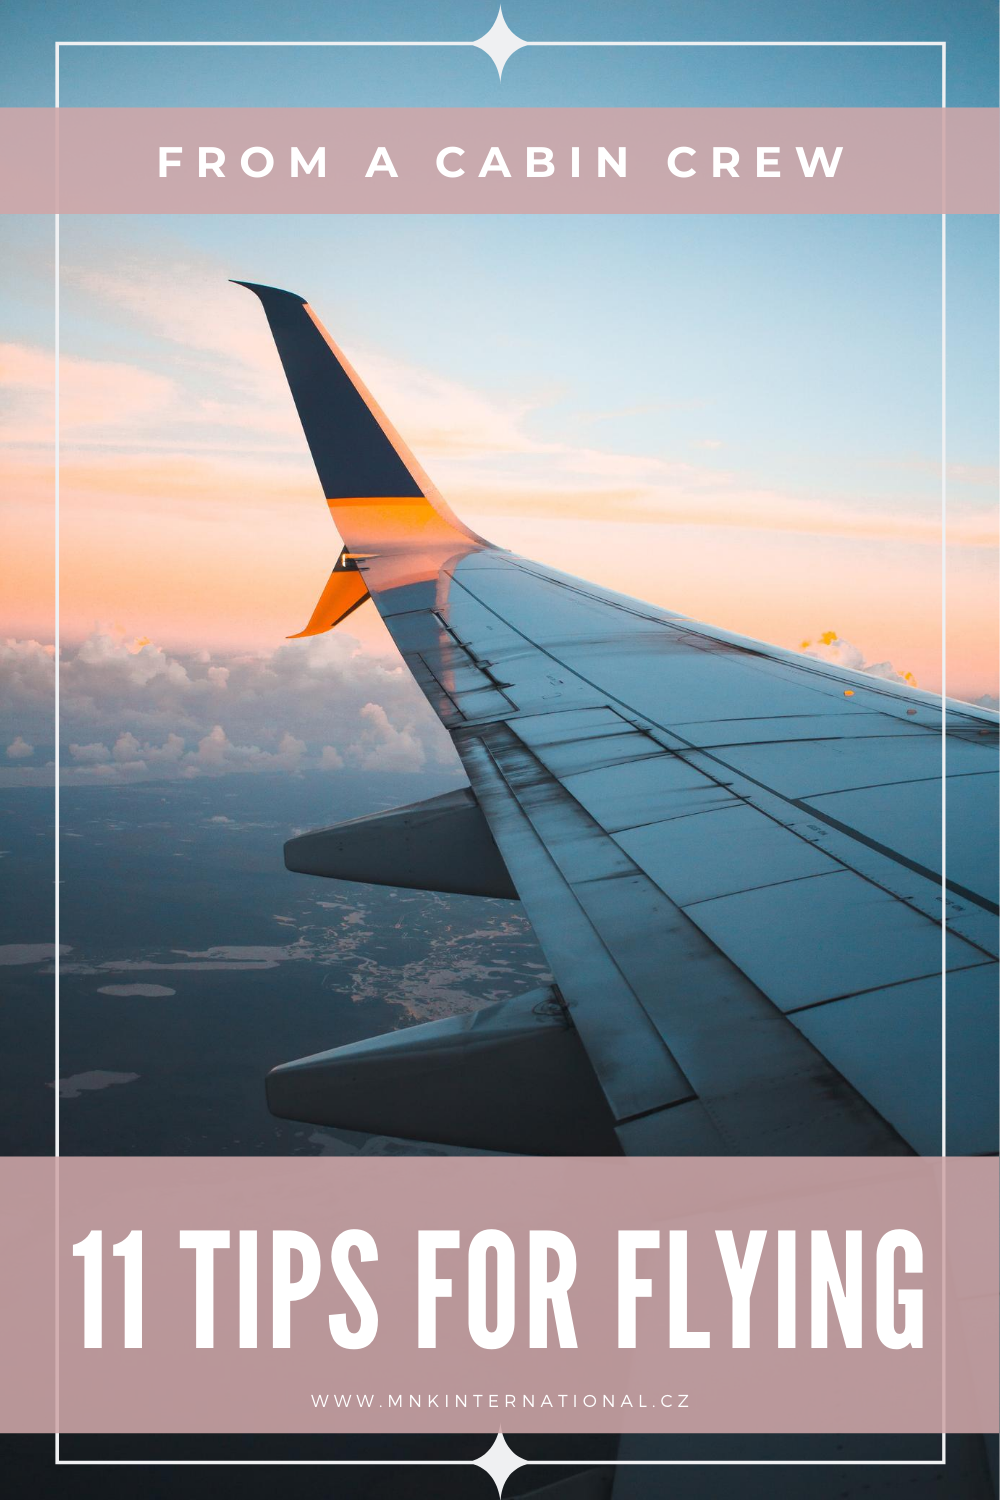 11 best travel tips from a cabin crew. How to travel comfortably on board without getting ill and feeling safe. | #cabincrewtips #travelhacks #traveltips